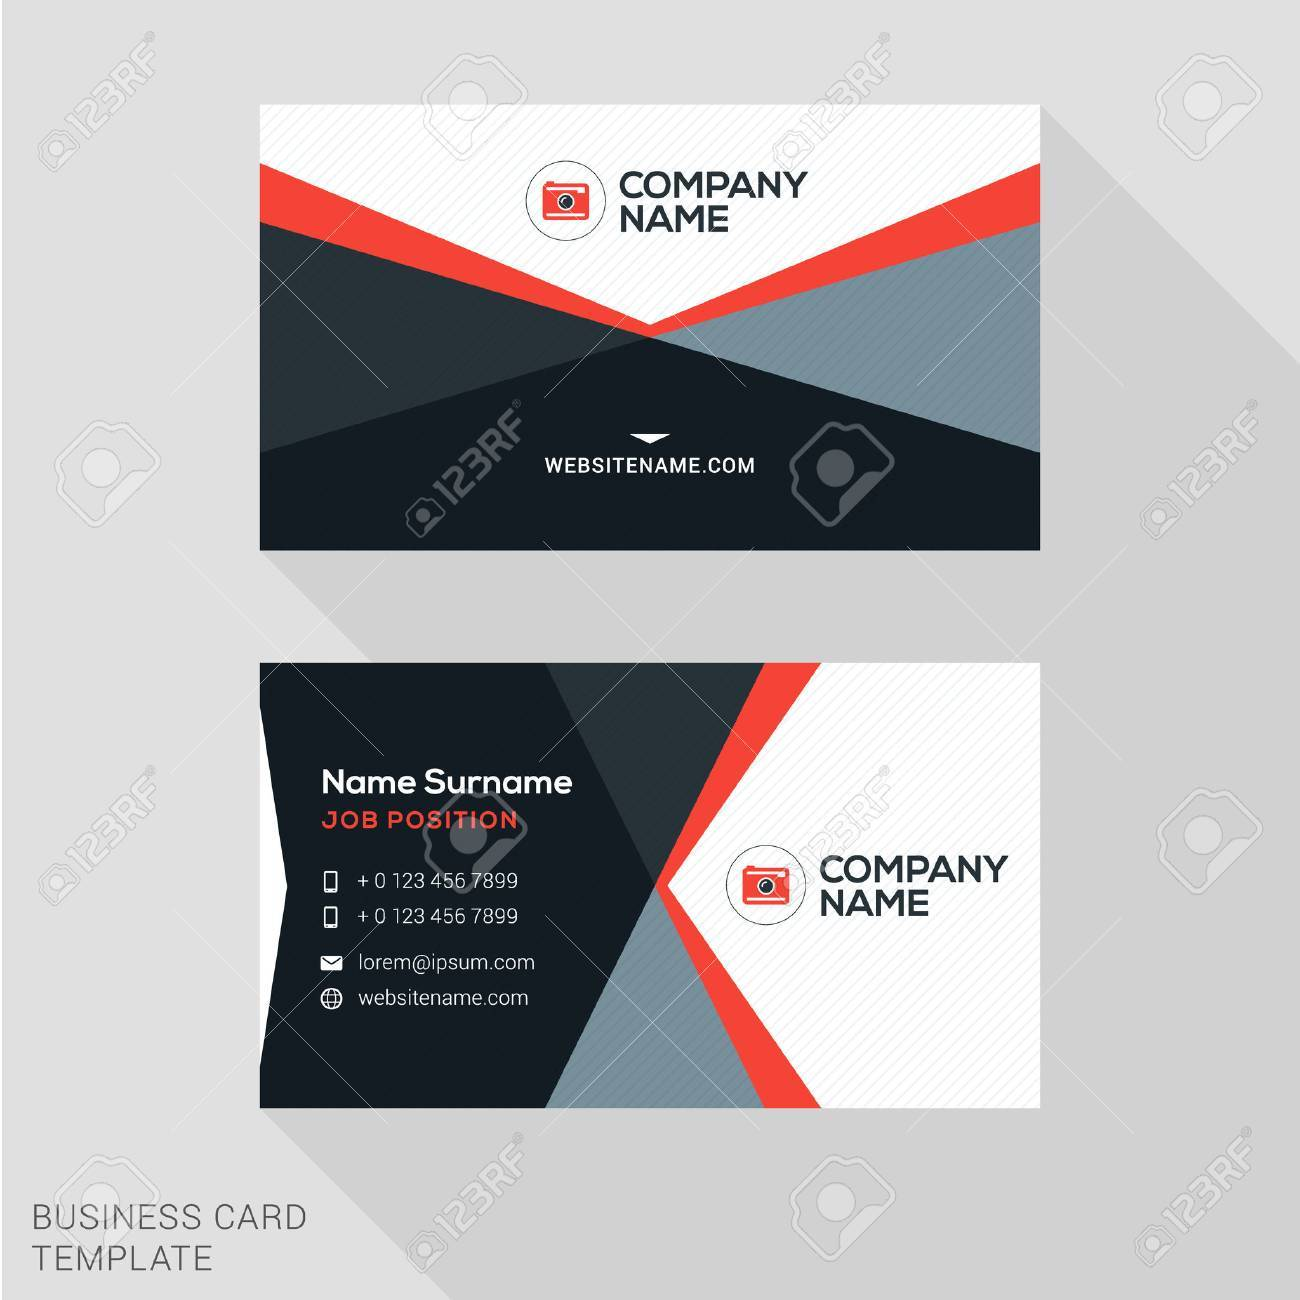 Creative Business Card Vector Template. Flat Design Vector ...